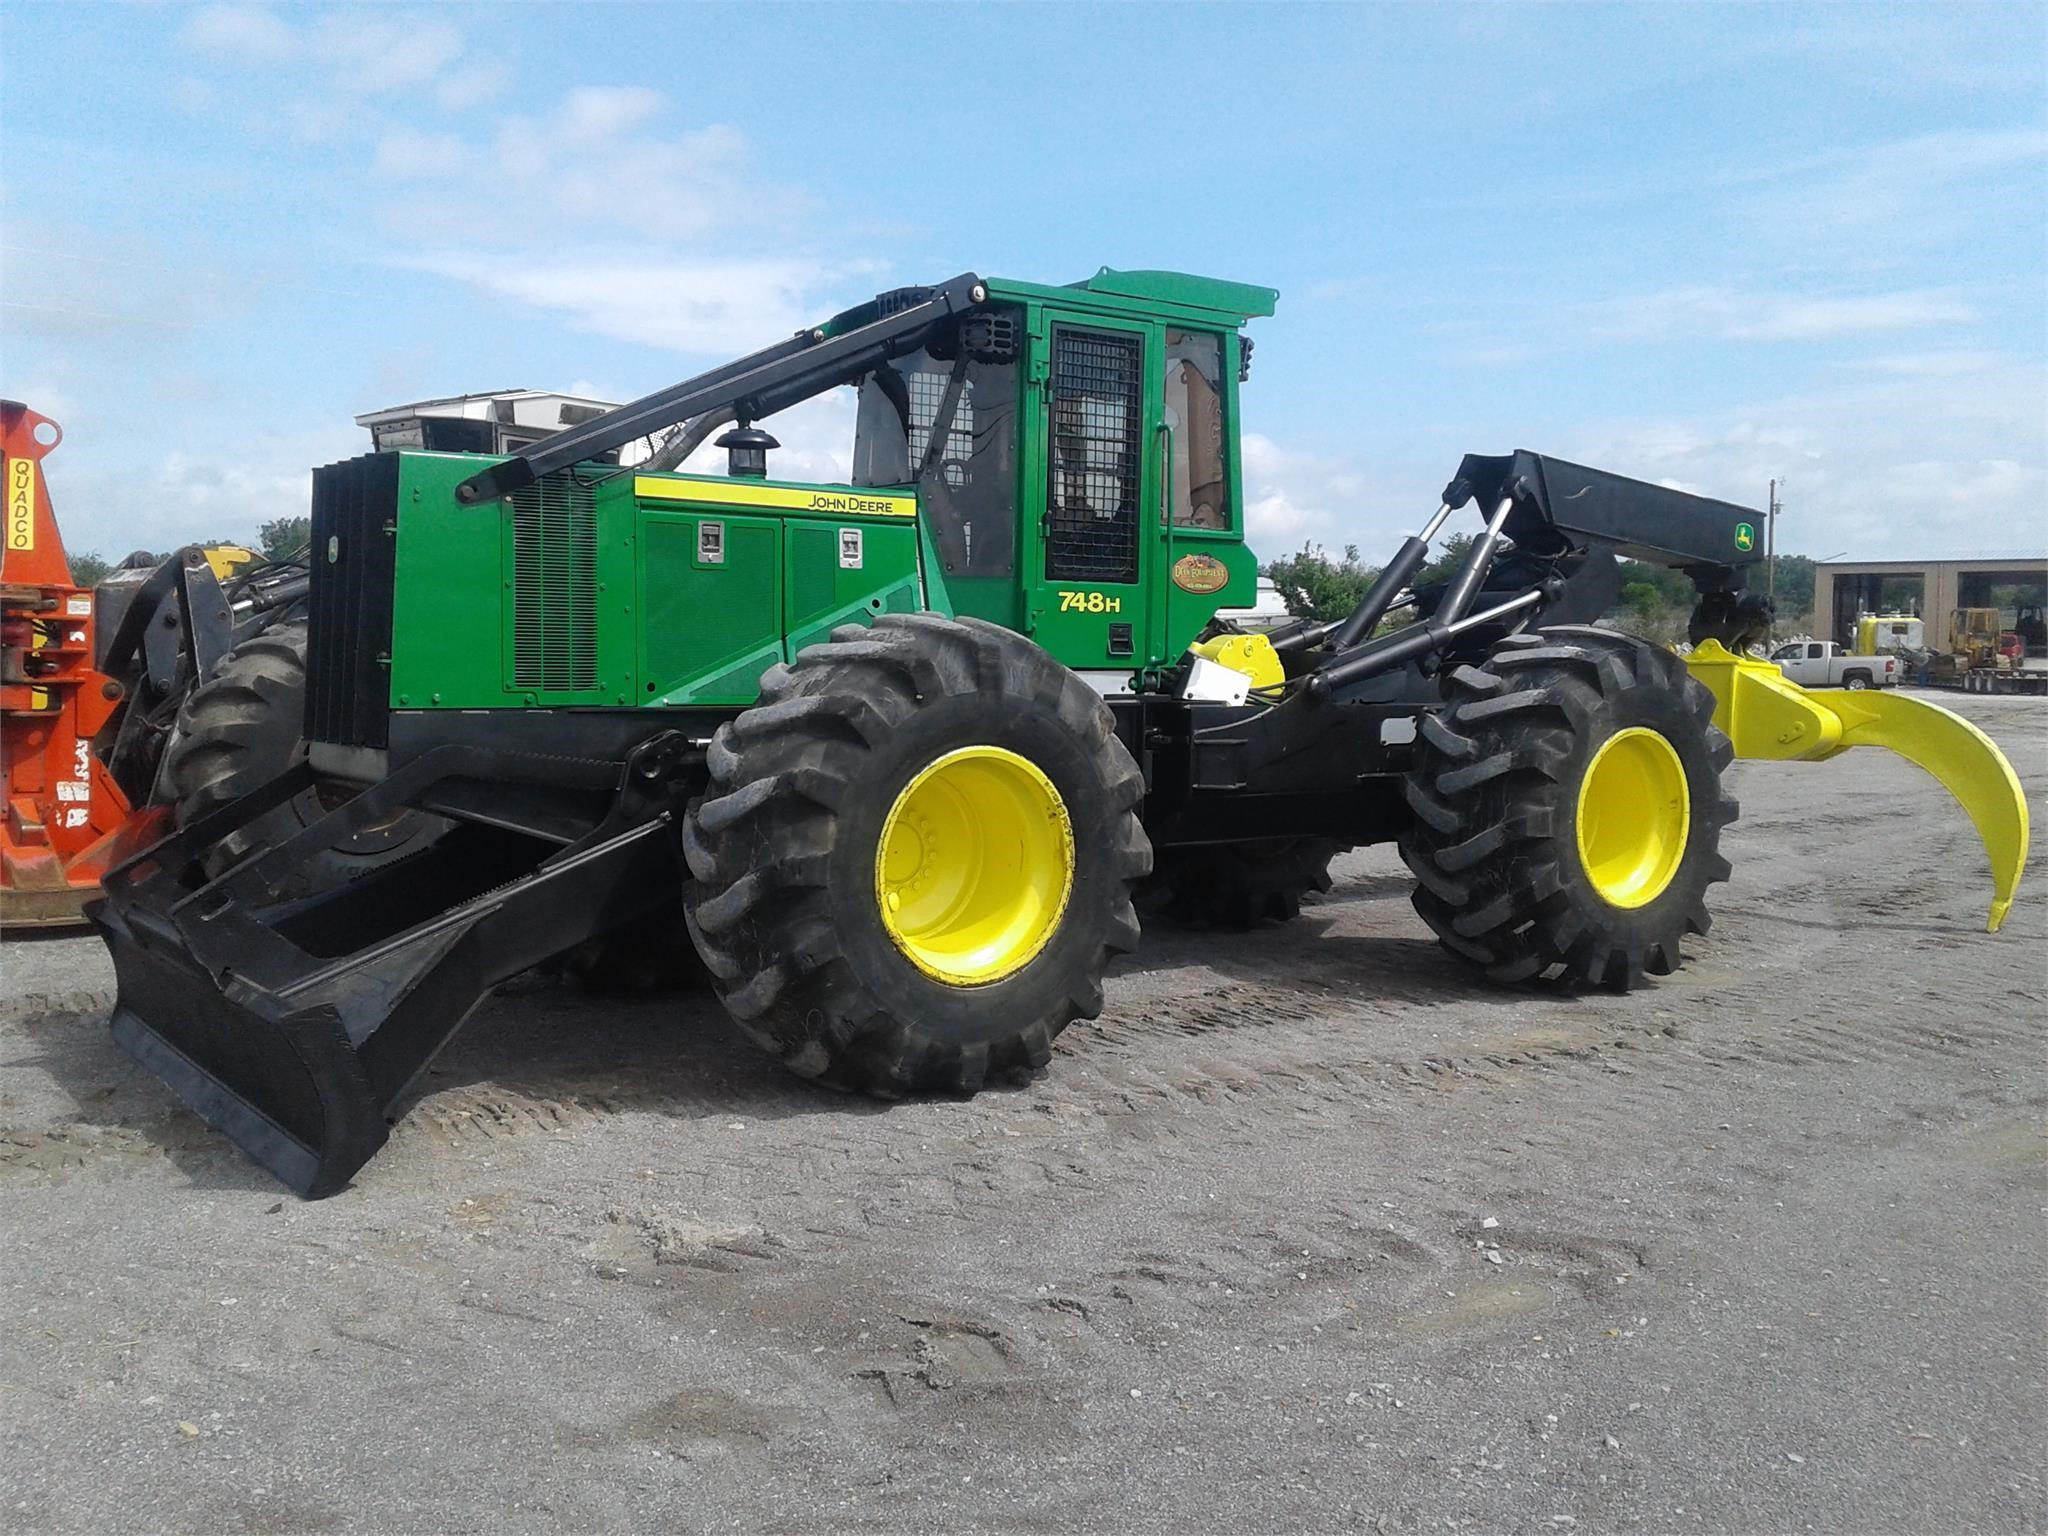 2014 DEERE 748H For Sale in Crossville, Tennessee